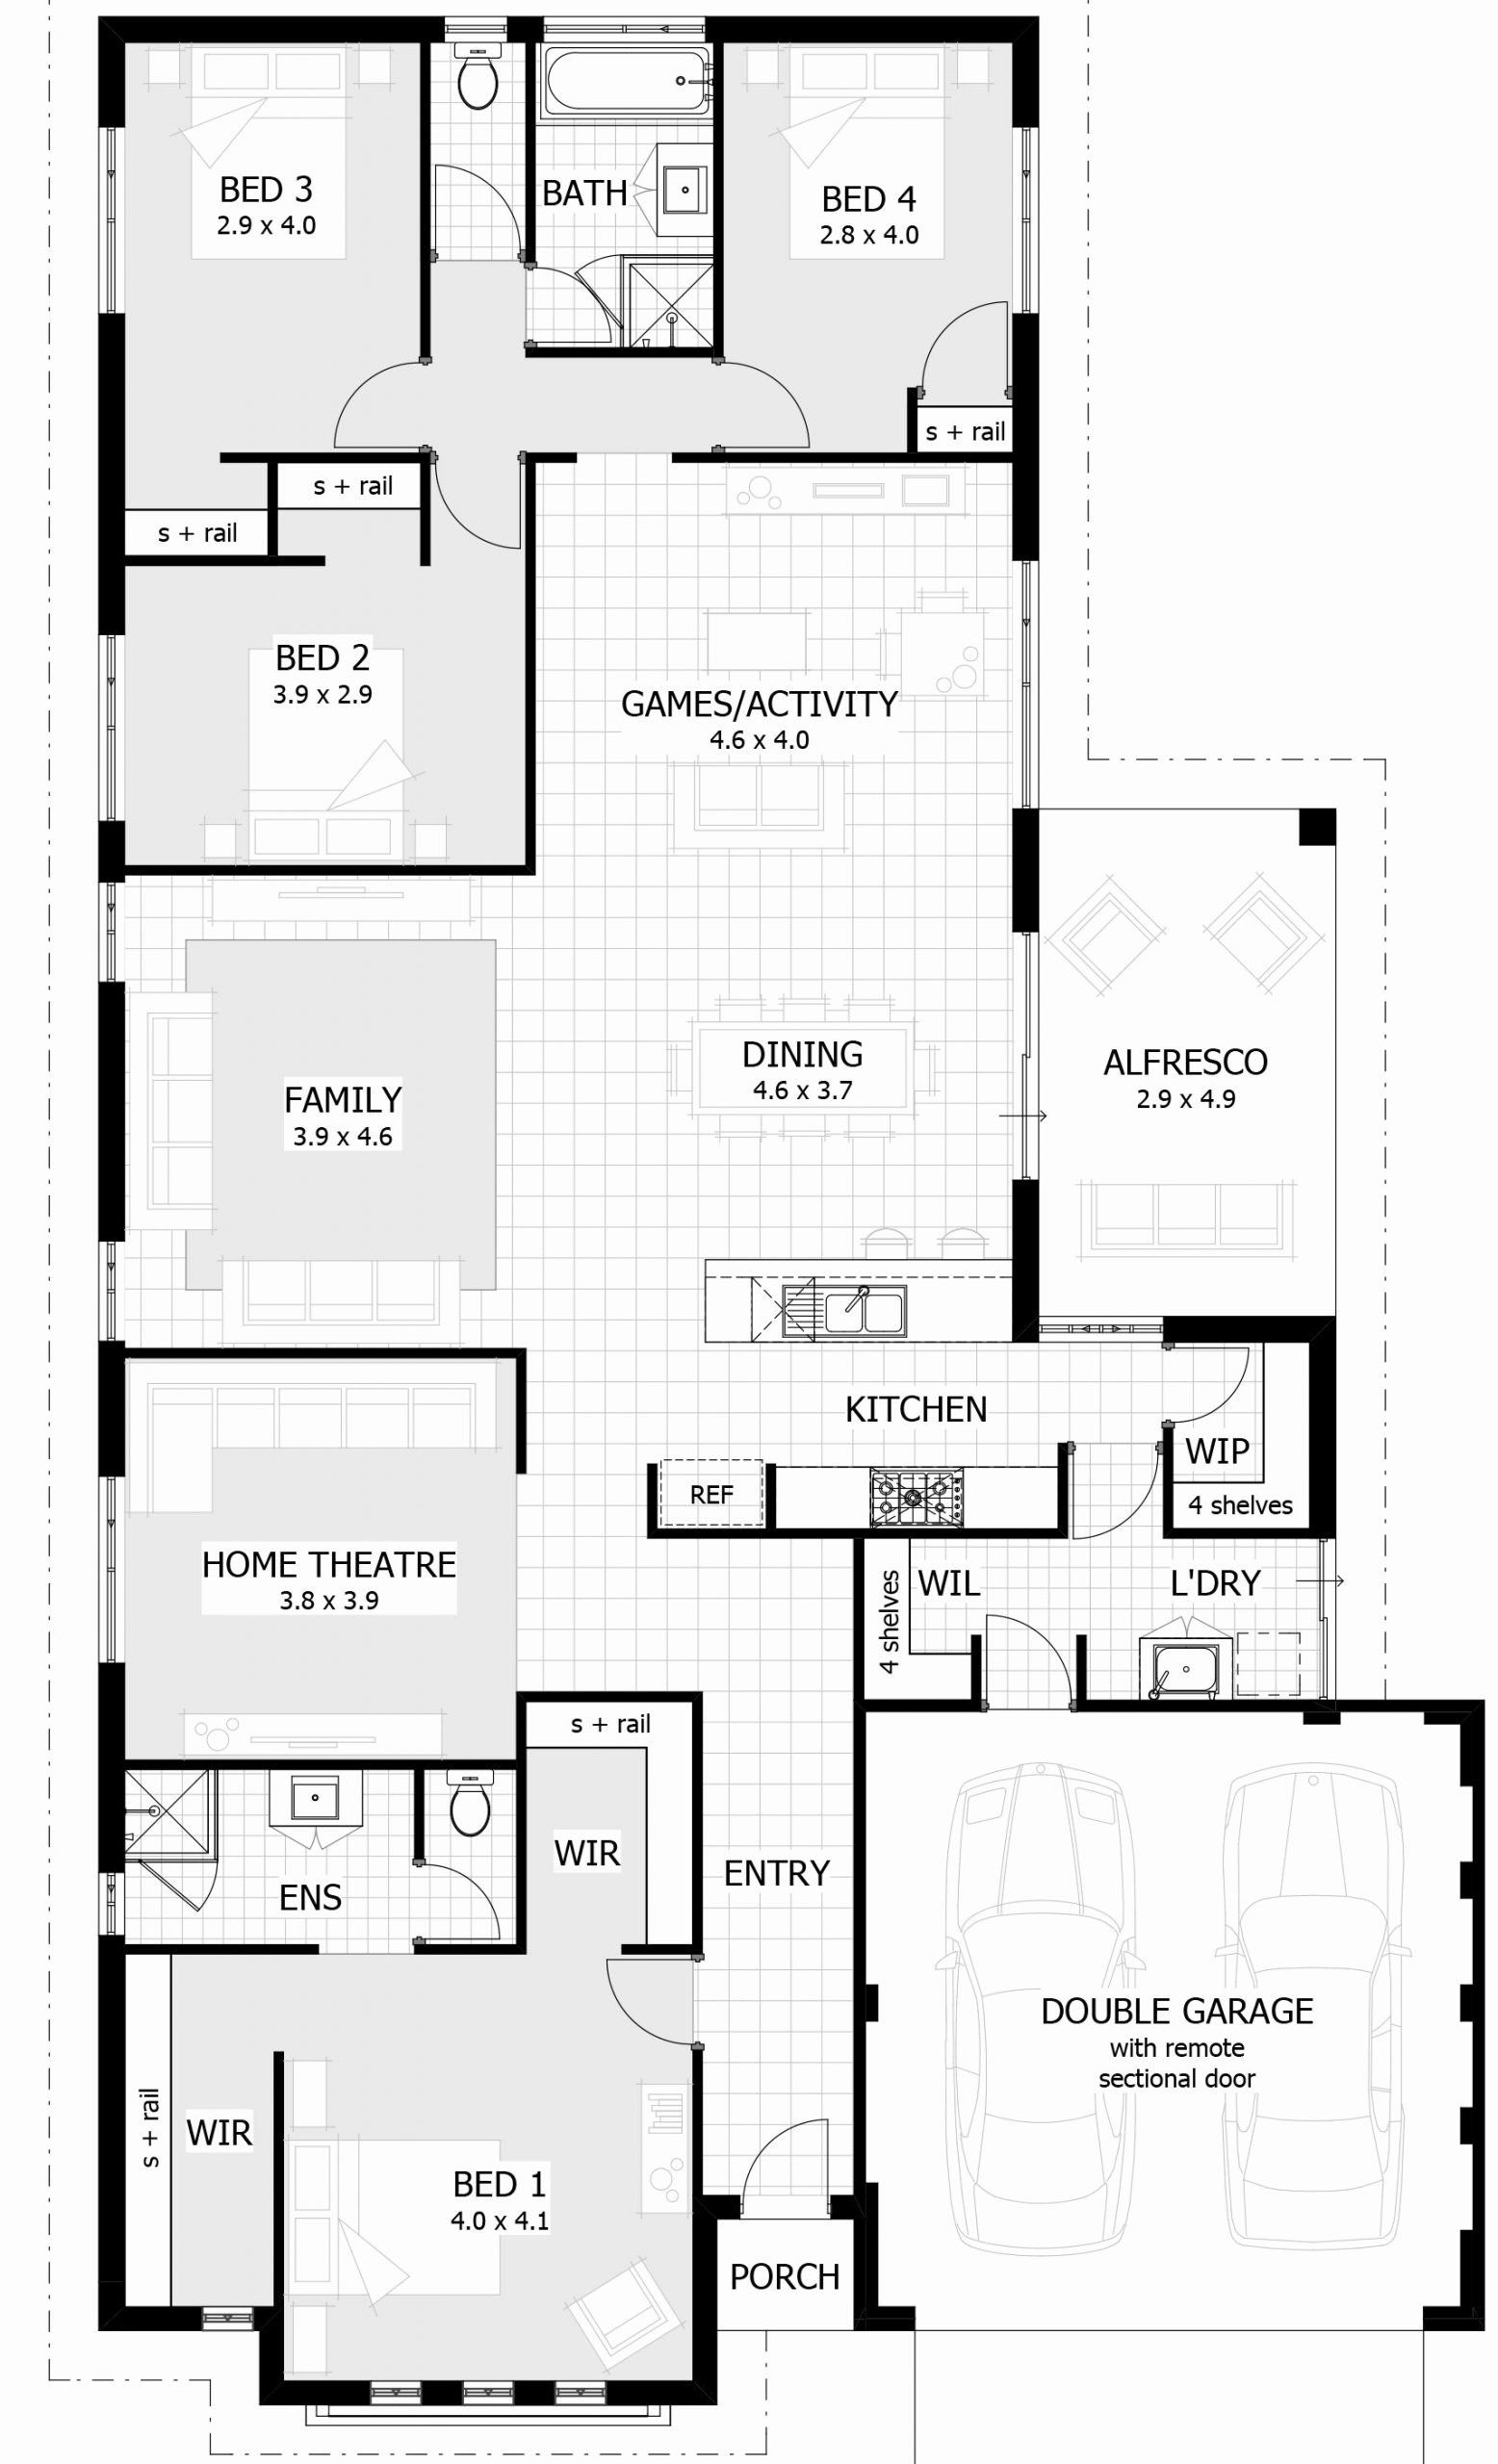 Simple 6 Bedroom House Plans Inspirational 15 Metre Wide Home Designs Celebration Homes 6 Bedroom House Plans Bedroom House Plans 4 Bedroom House Plans